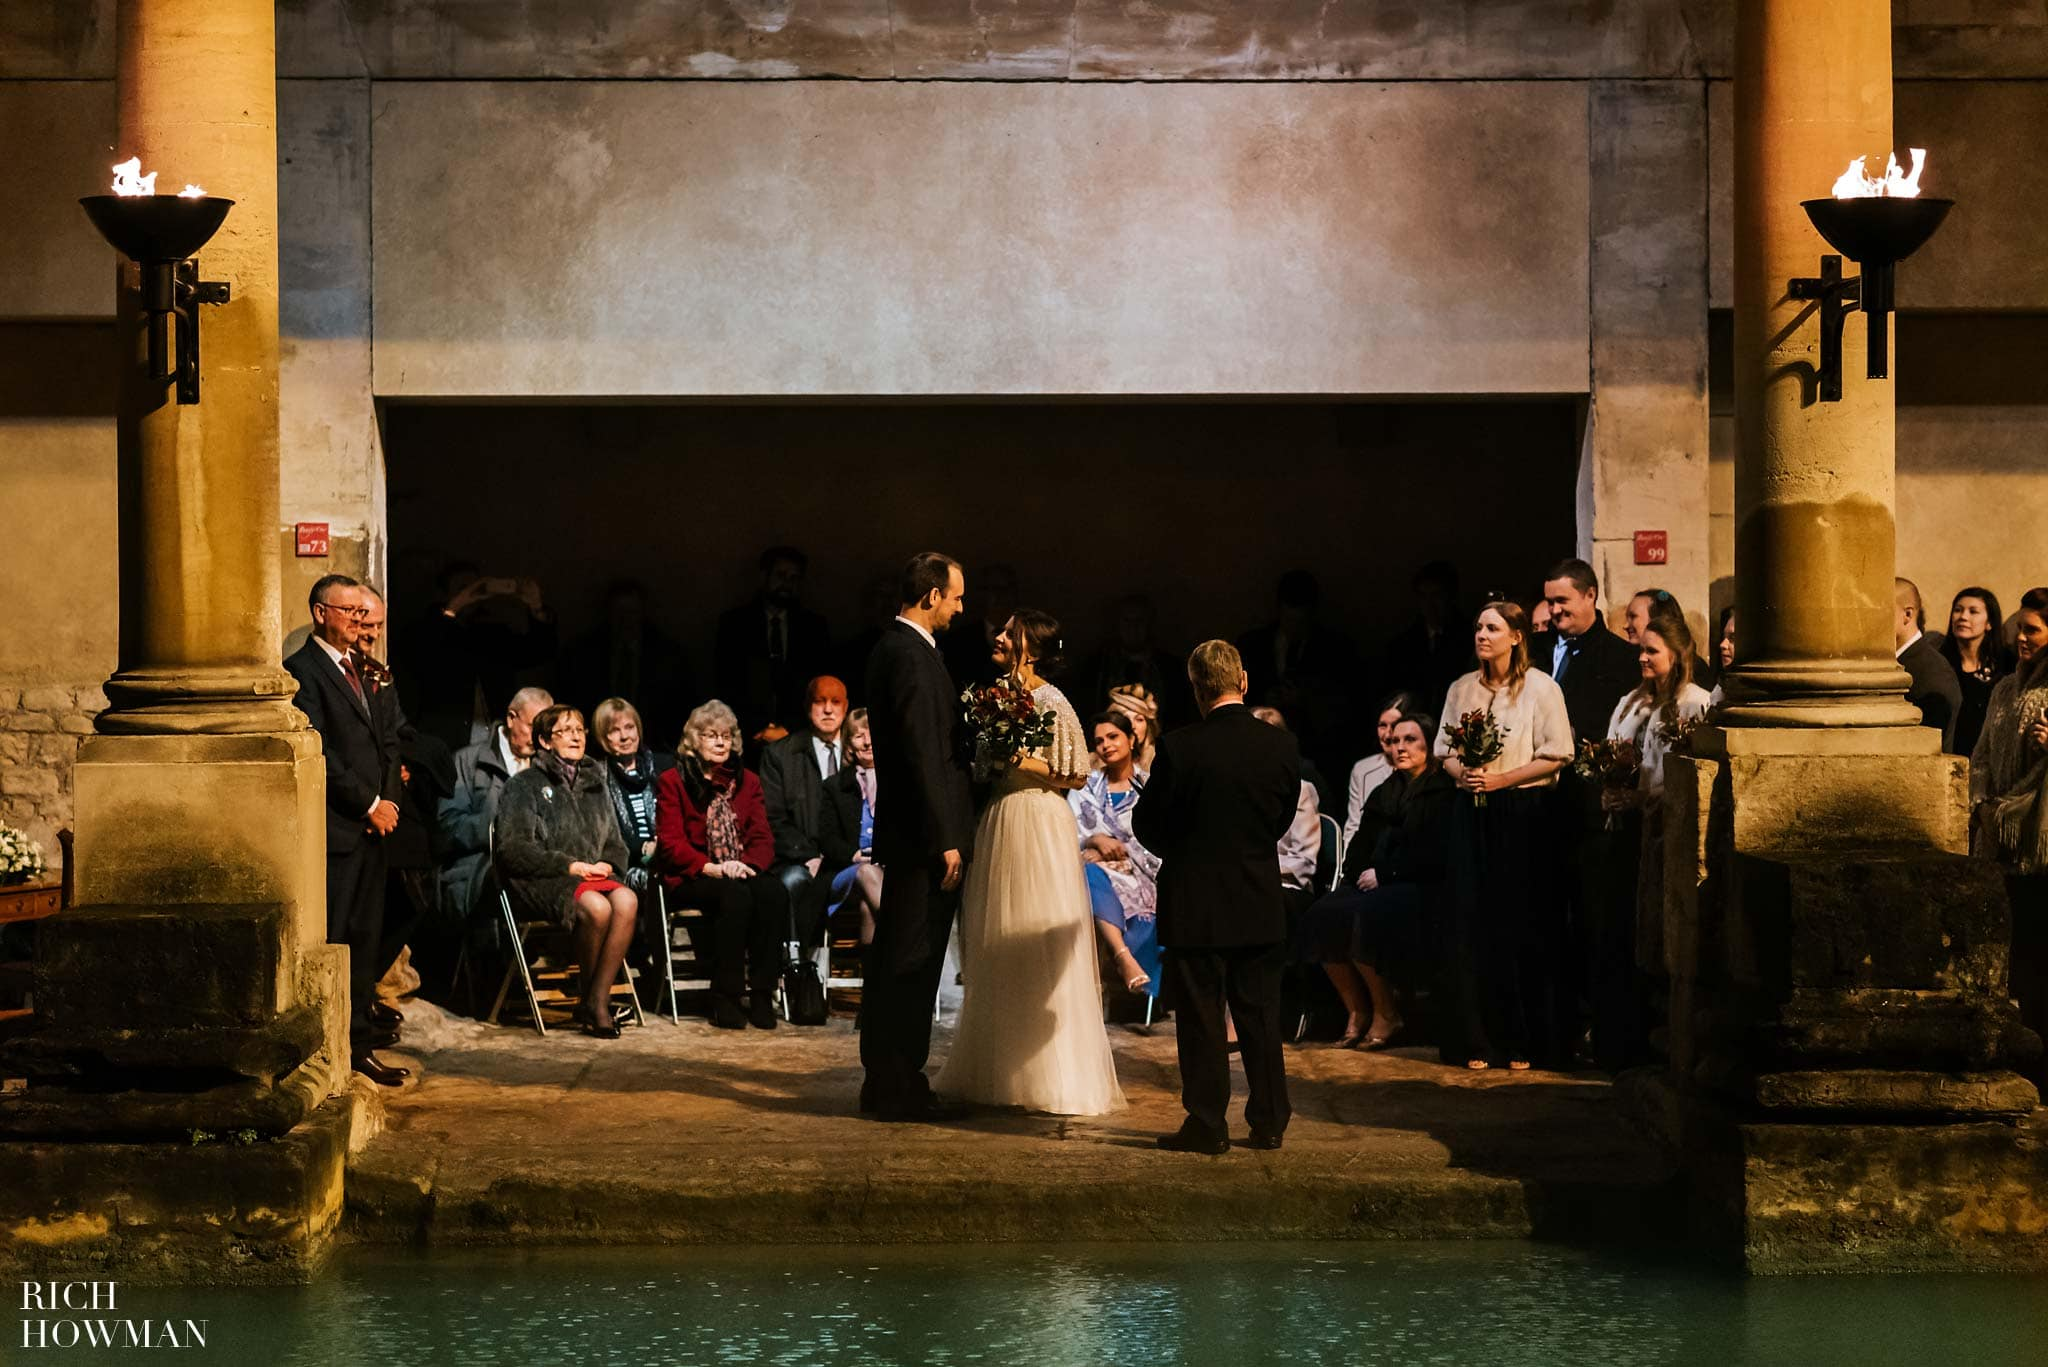 Wedding ceremony at the Roman Baths - sunset ceremony